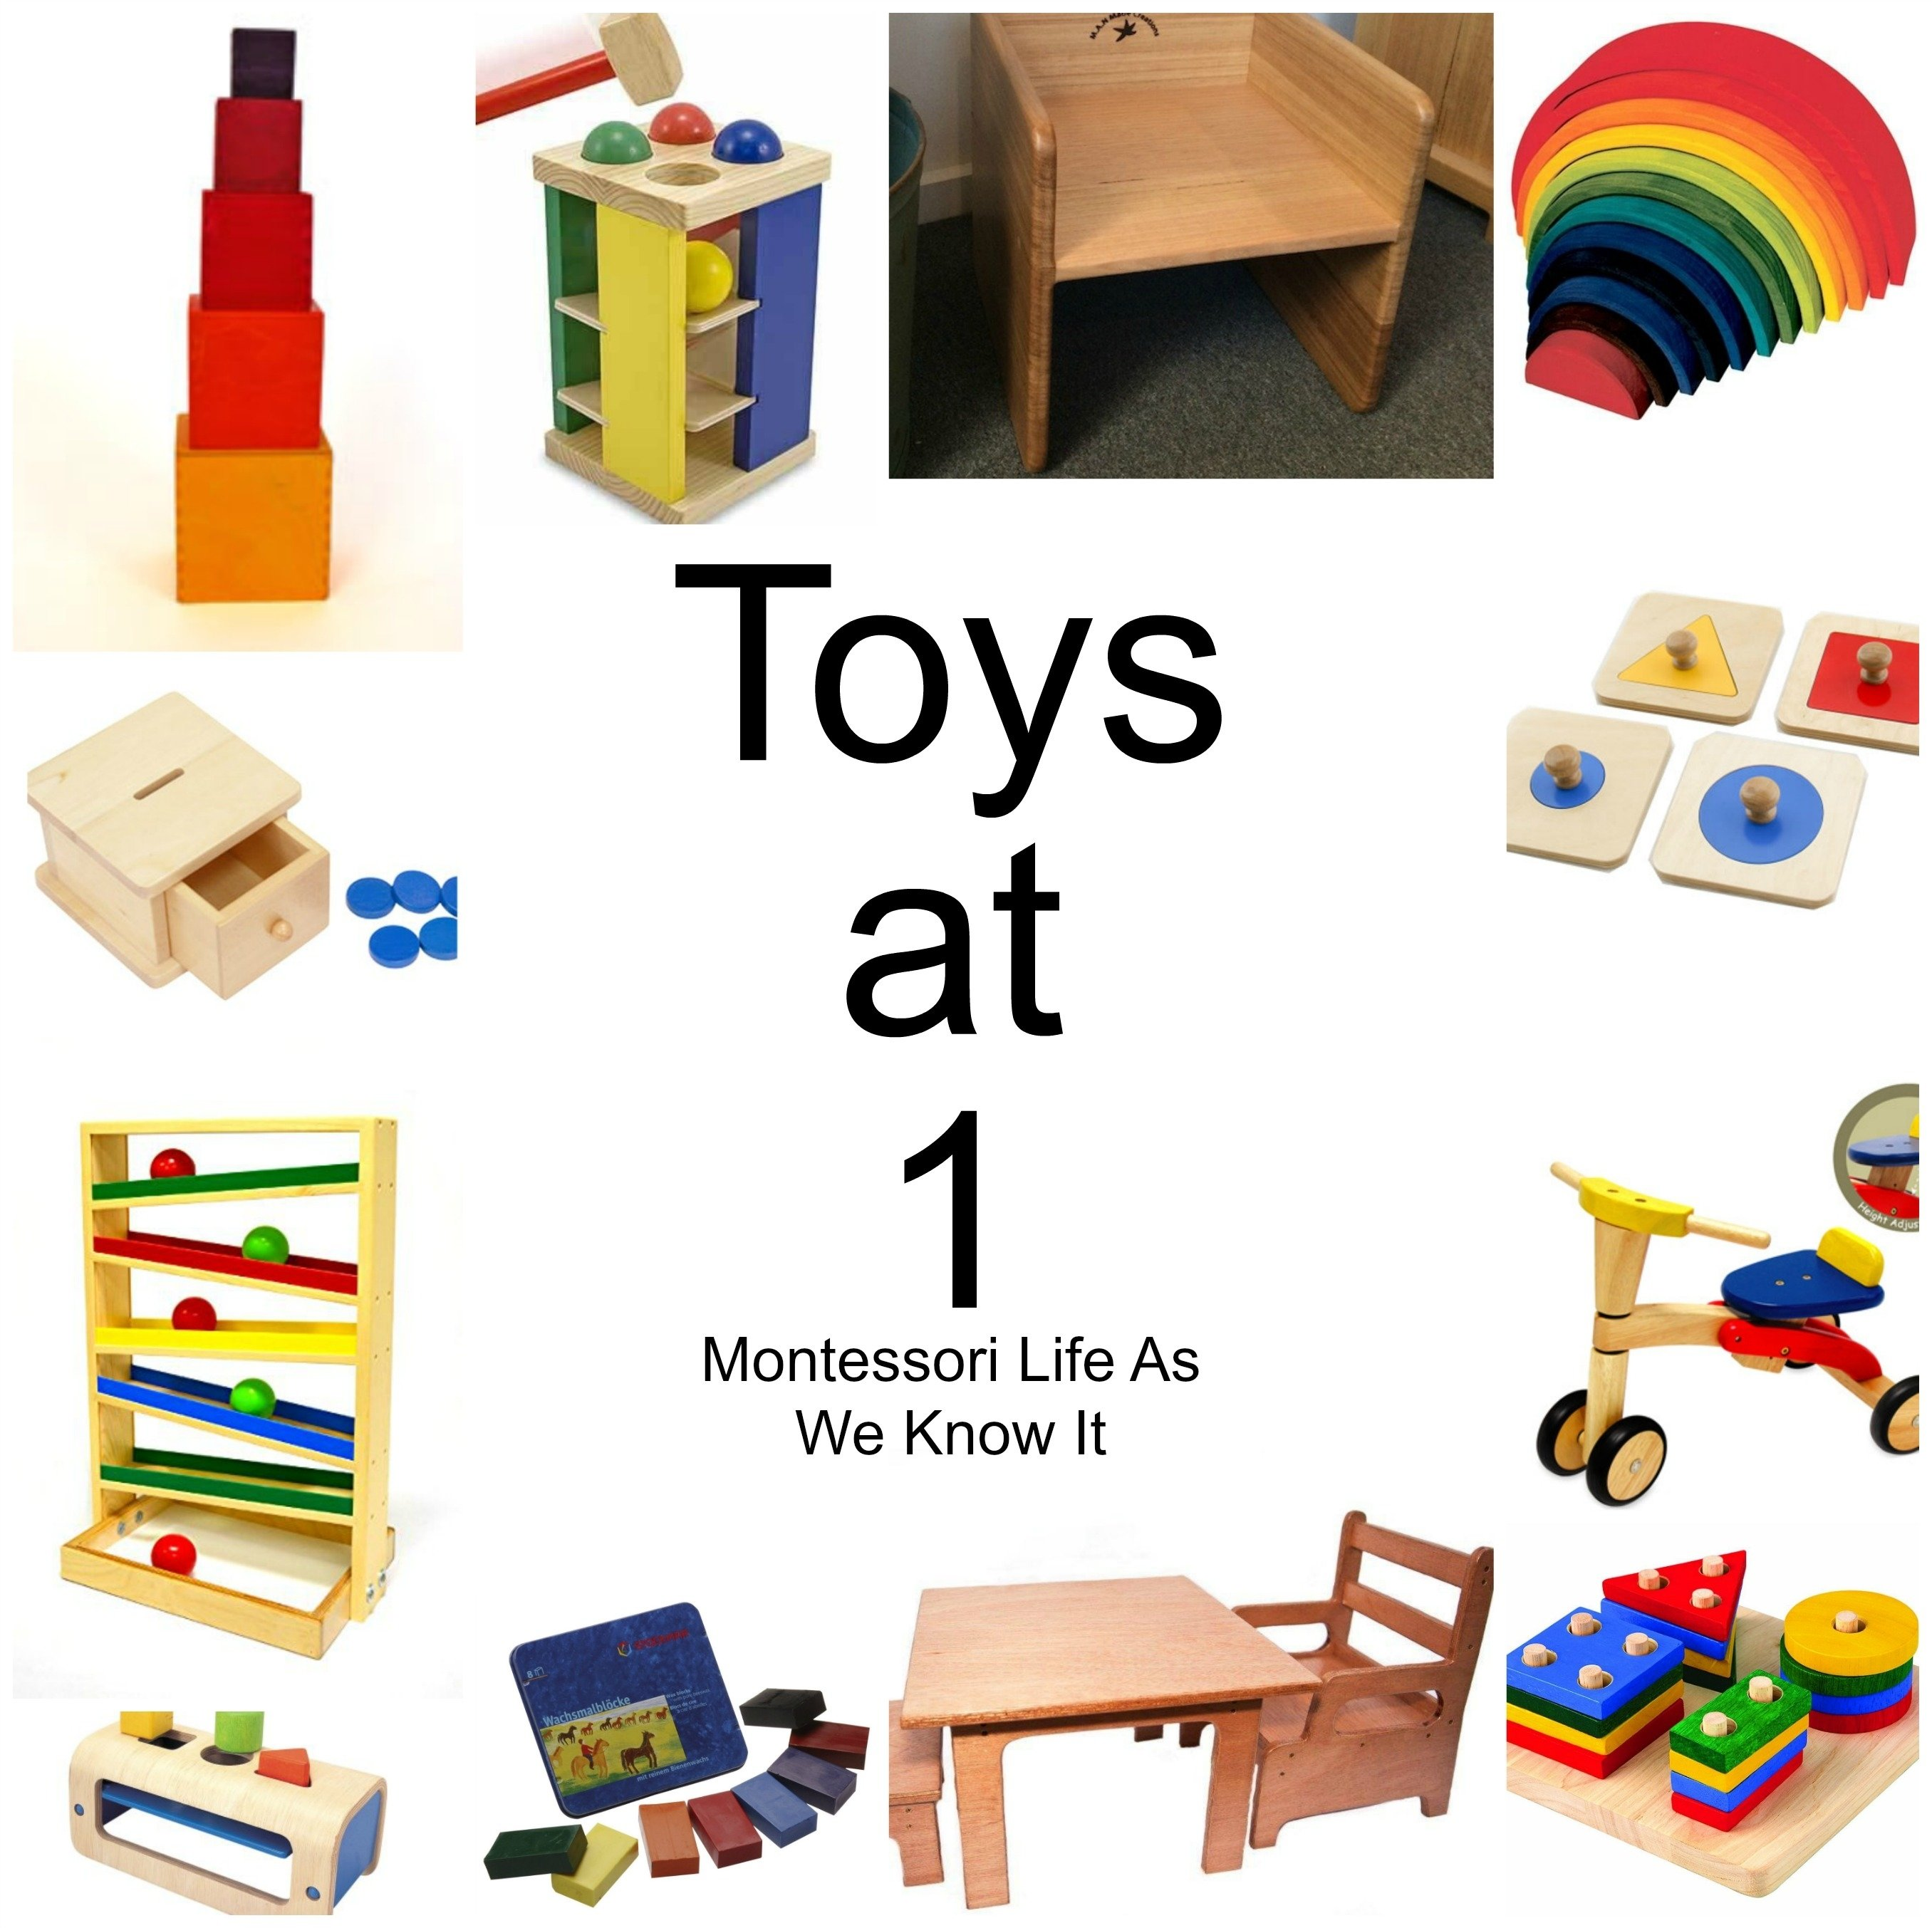 10 Lovely Gift Ideas For One Year Old gift ideas for one year old montessori life as we know it 2 2021